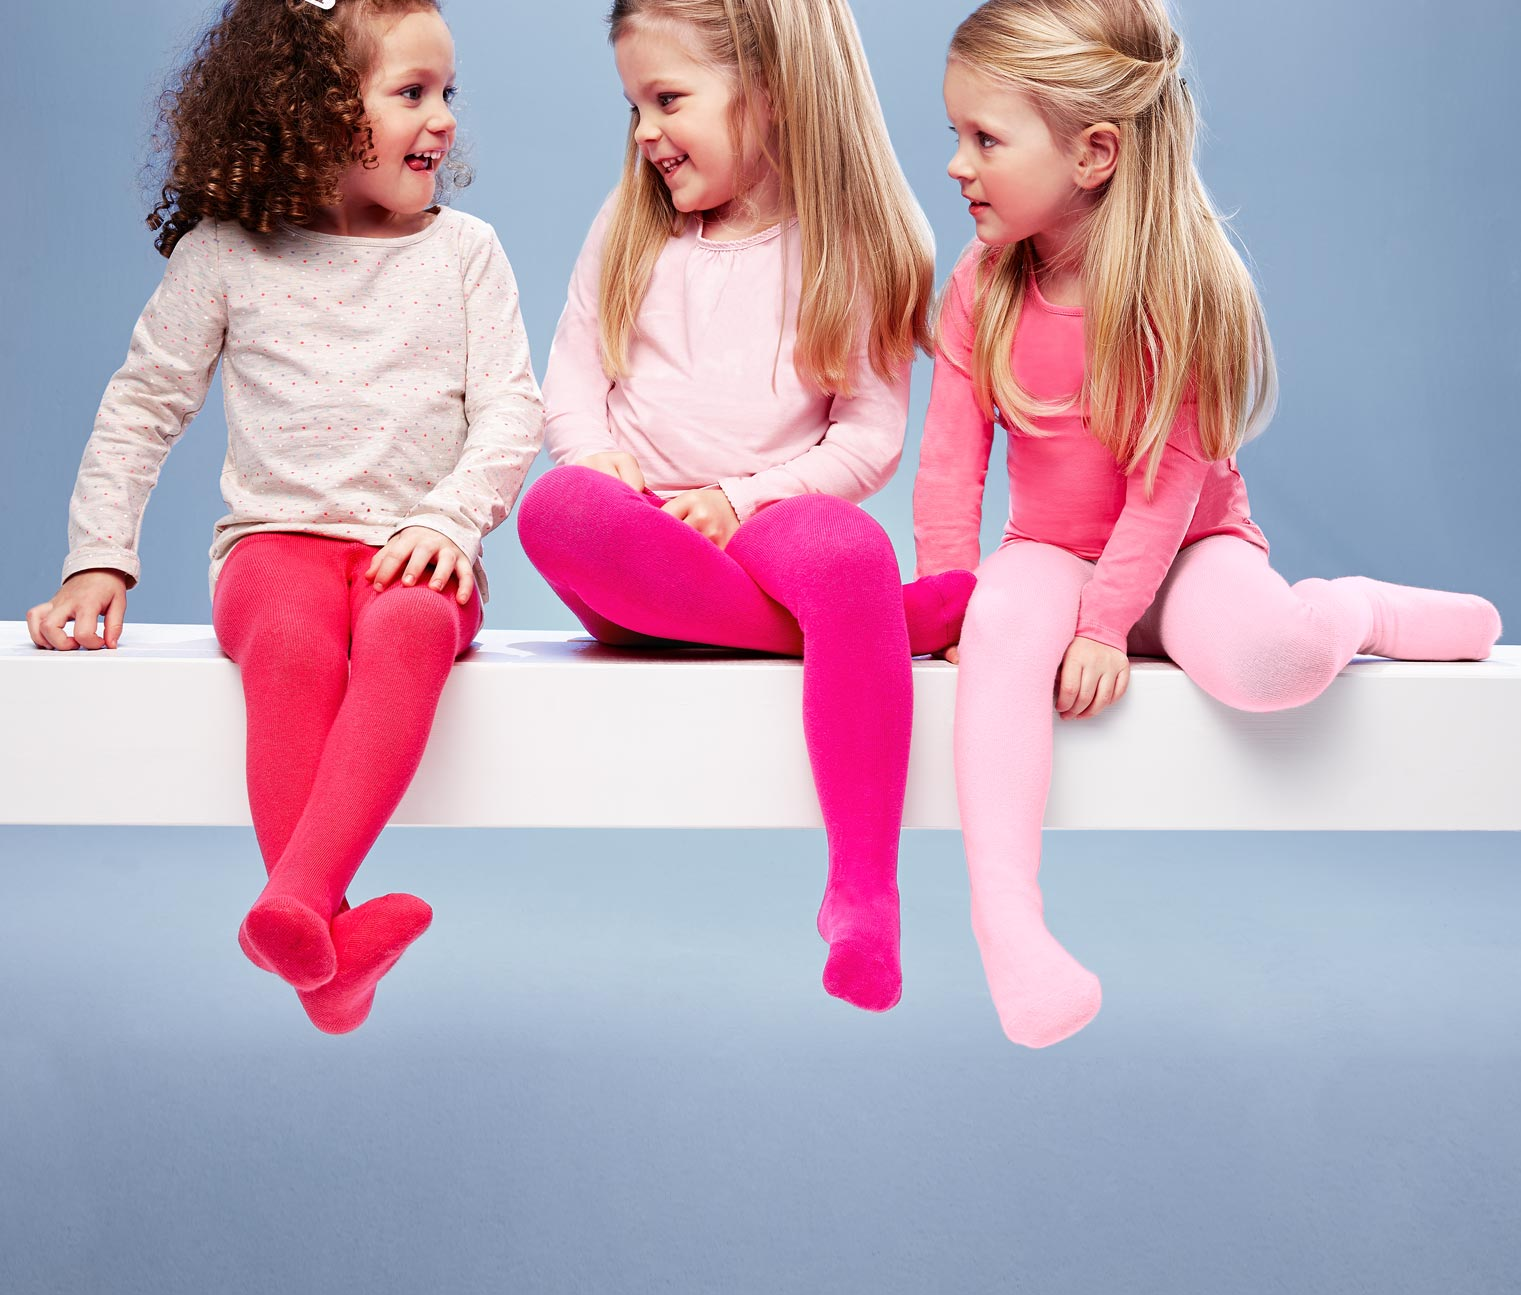 Cartoon design girls pantyhose cotton girl tights 3 styles stockings. from $ 8 90 Prime. 4 out of 5 stars iLover. Baby Girls Stretchy Leggings Socks Kids Pants Embroidery Children Trousers Footed Tights. from $ 9 Monvecle. 3 Pack Girls' Kids Opaque Microfiber Dance Stockings School Uniform Footed Tights.